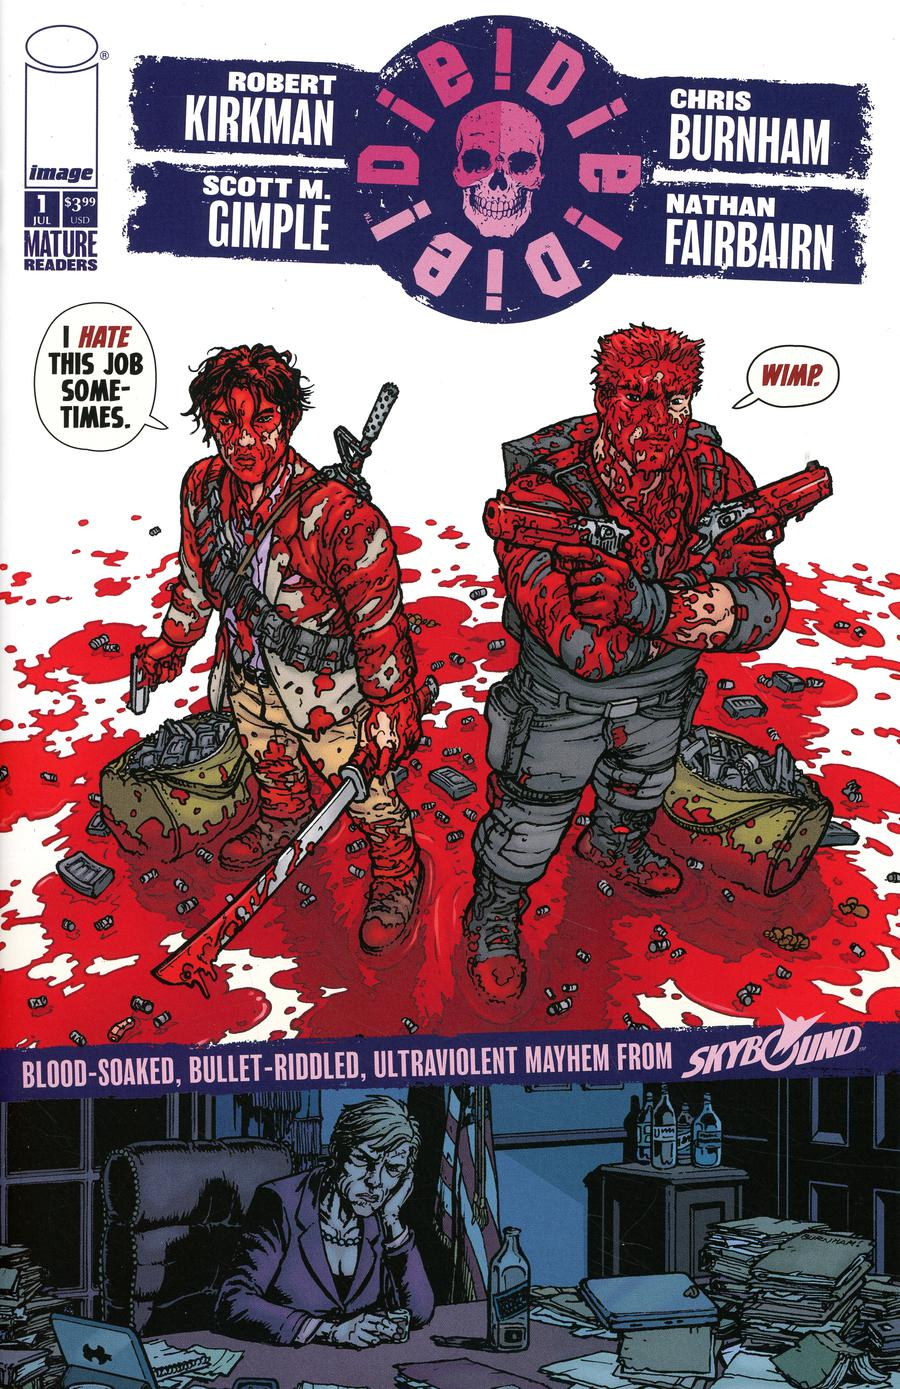 Die Die Die #1 Cover I Chris Burnham & Nathan Fairbairn Wimp Cover